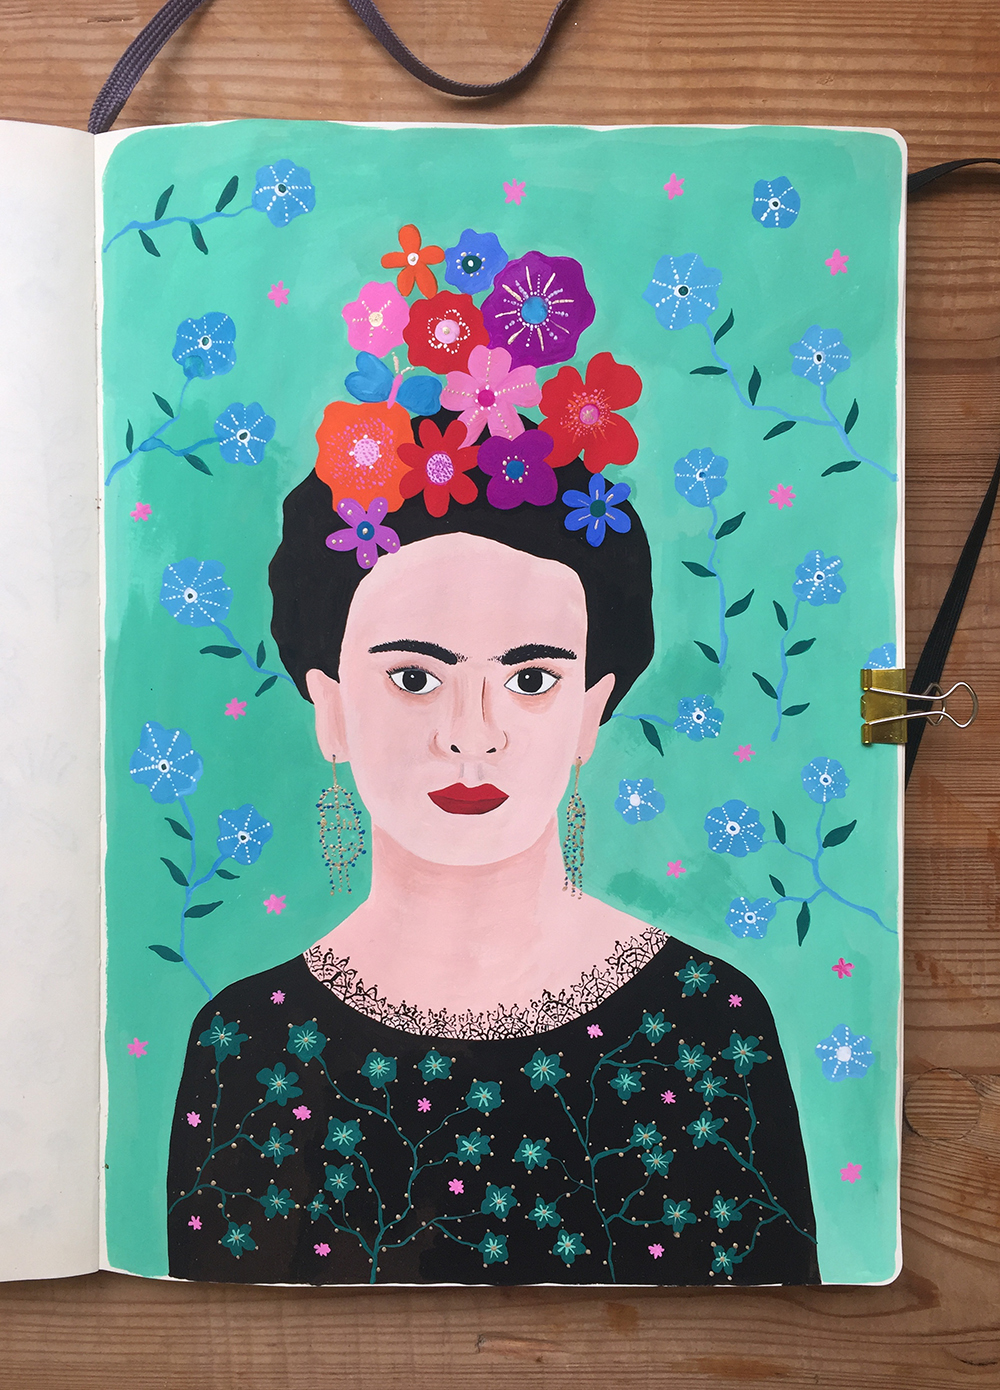 Frida Kahlo illustration by Marenthe